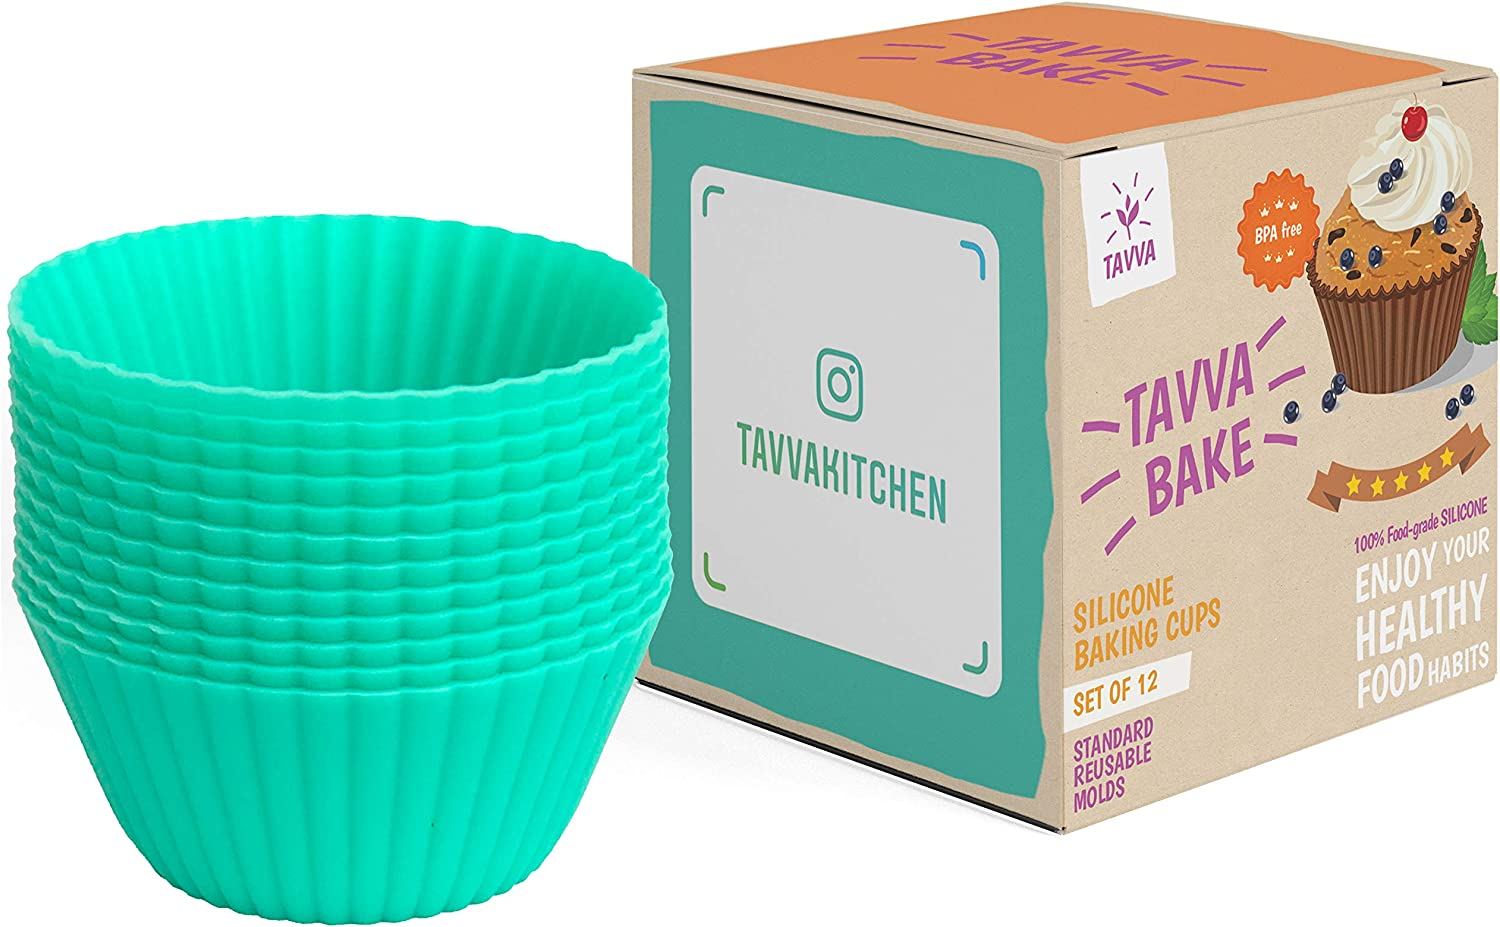 Silicone Baking Cups, Reusable Cupcake Liners Non-stick Muffin Cups Cake Molds Cupcake Holder, 12 Packs